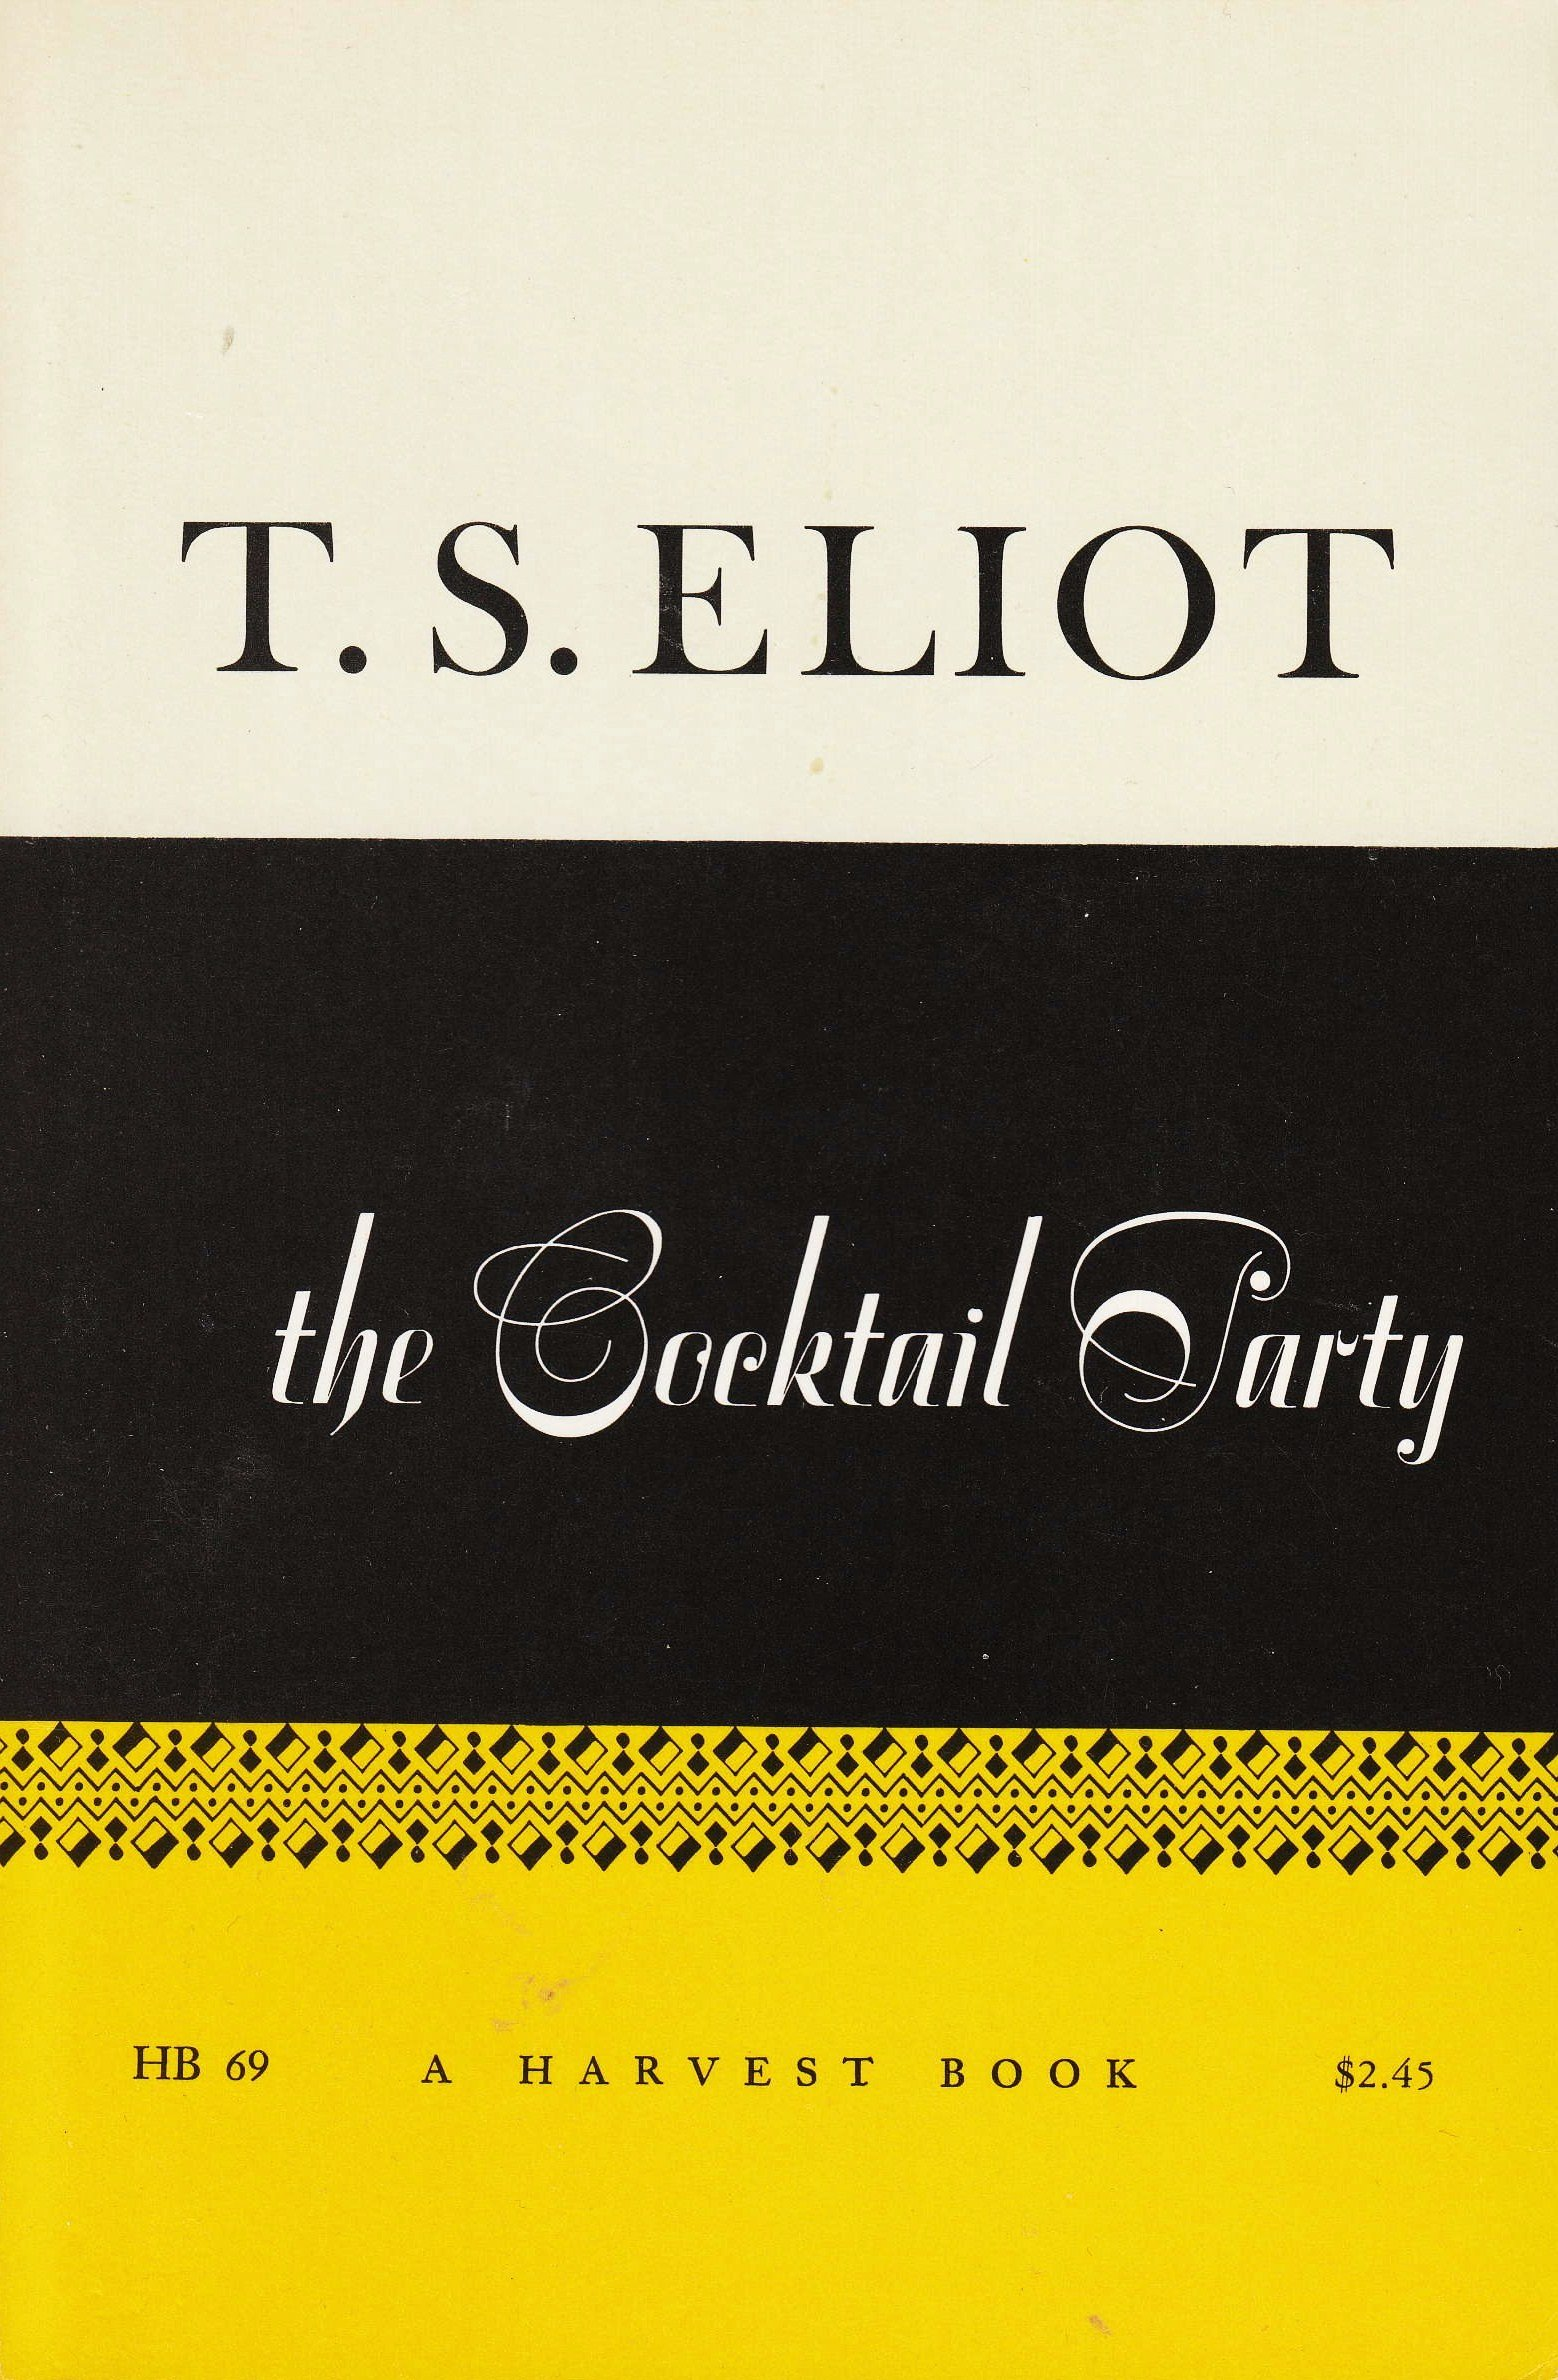 The Cocktail Party (A Harvest Book), Eliot, T.S.